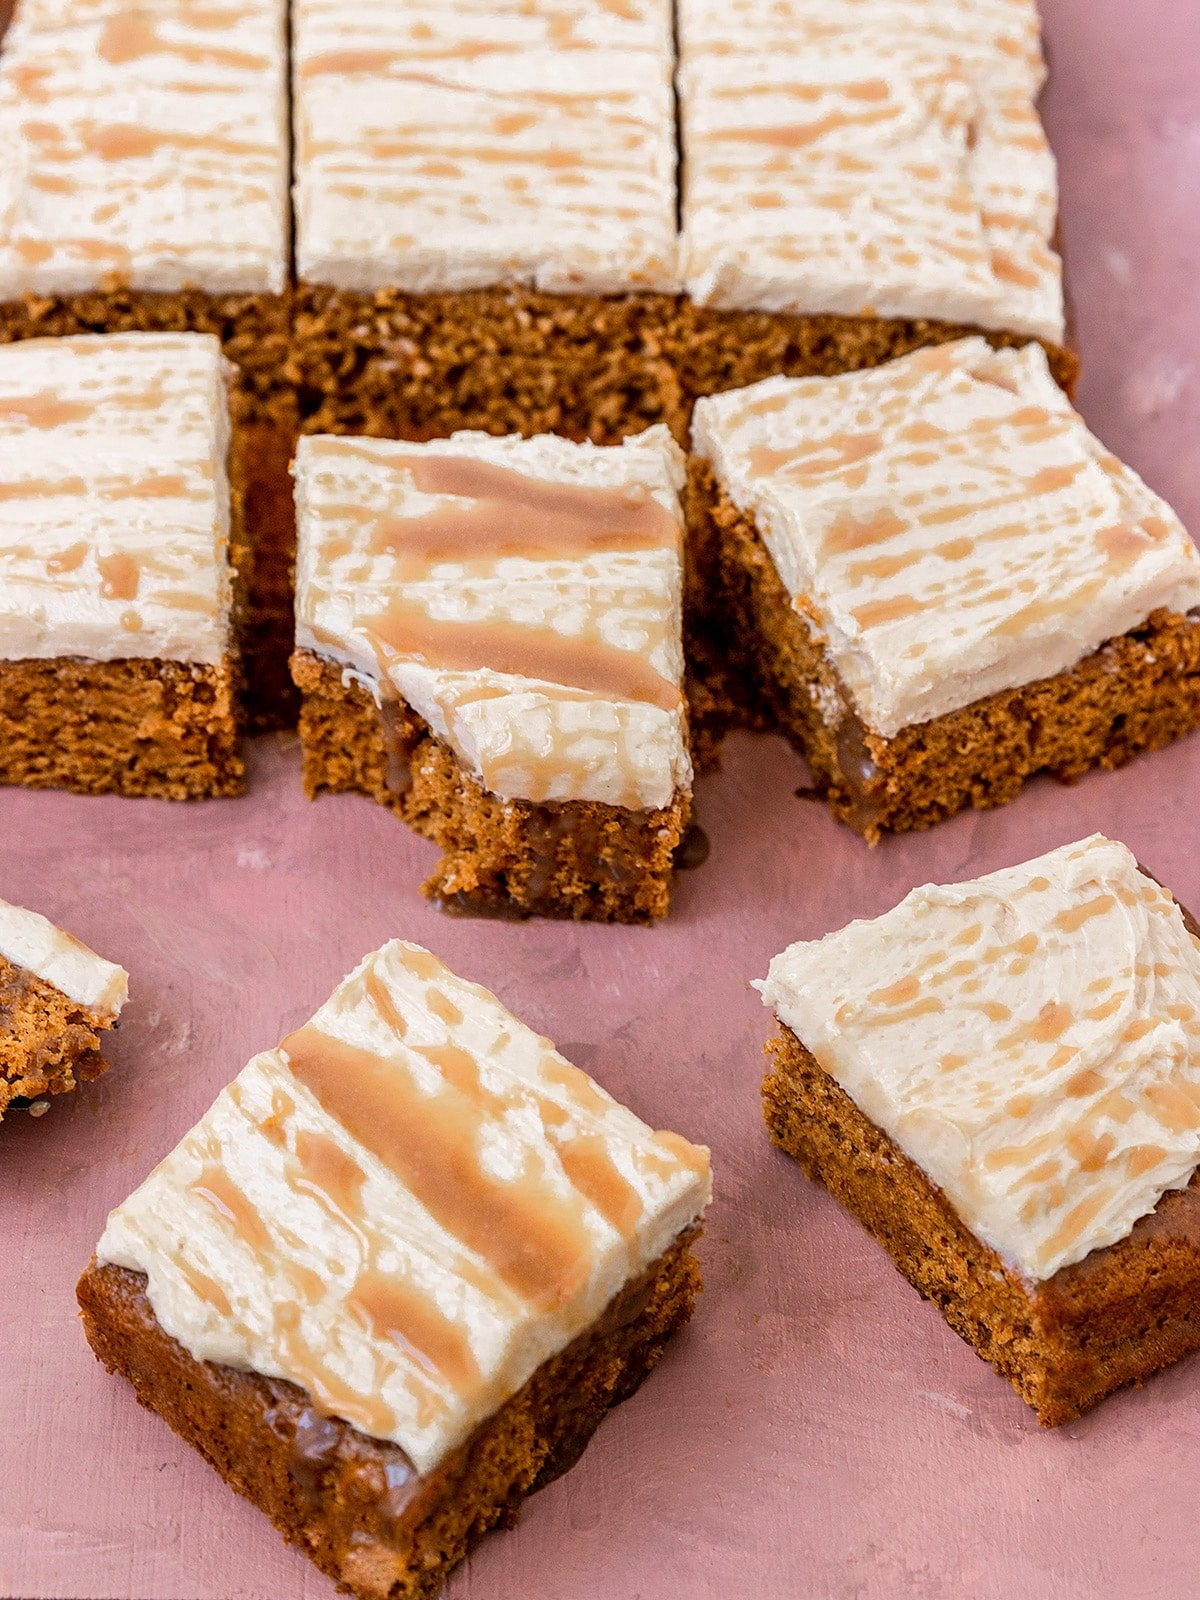 square slices of pumpkin sheet cake with a bite taken out of one piece